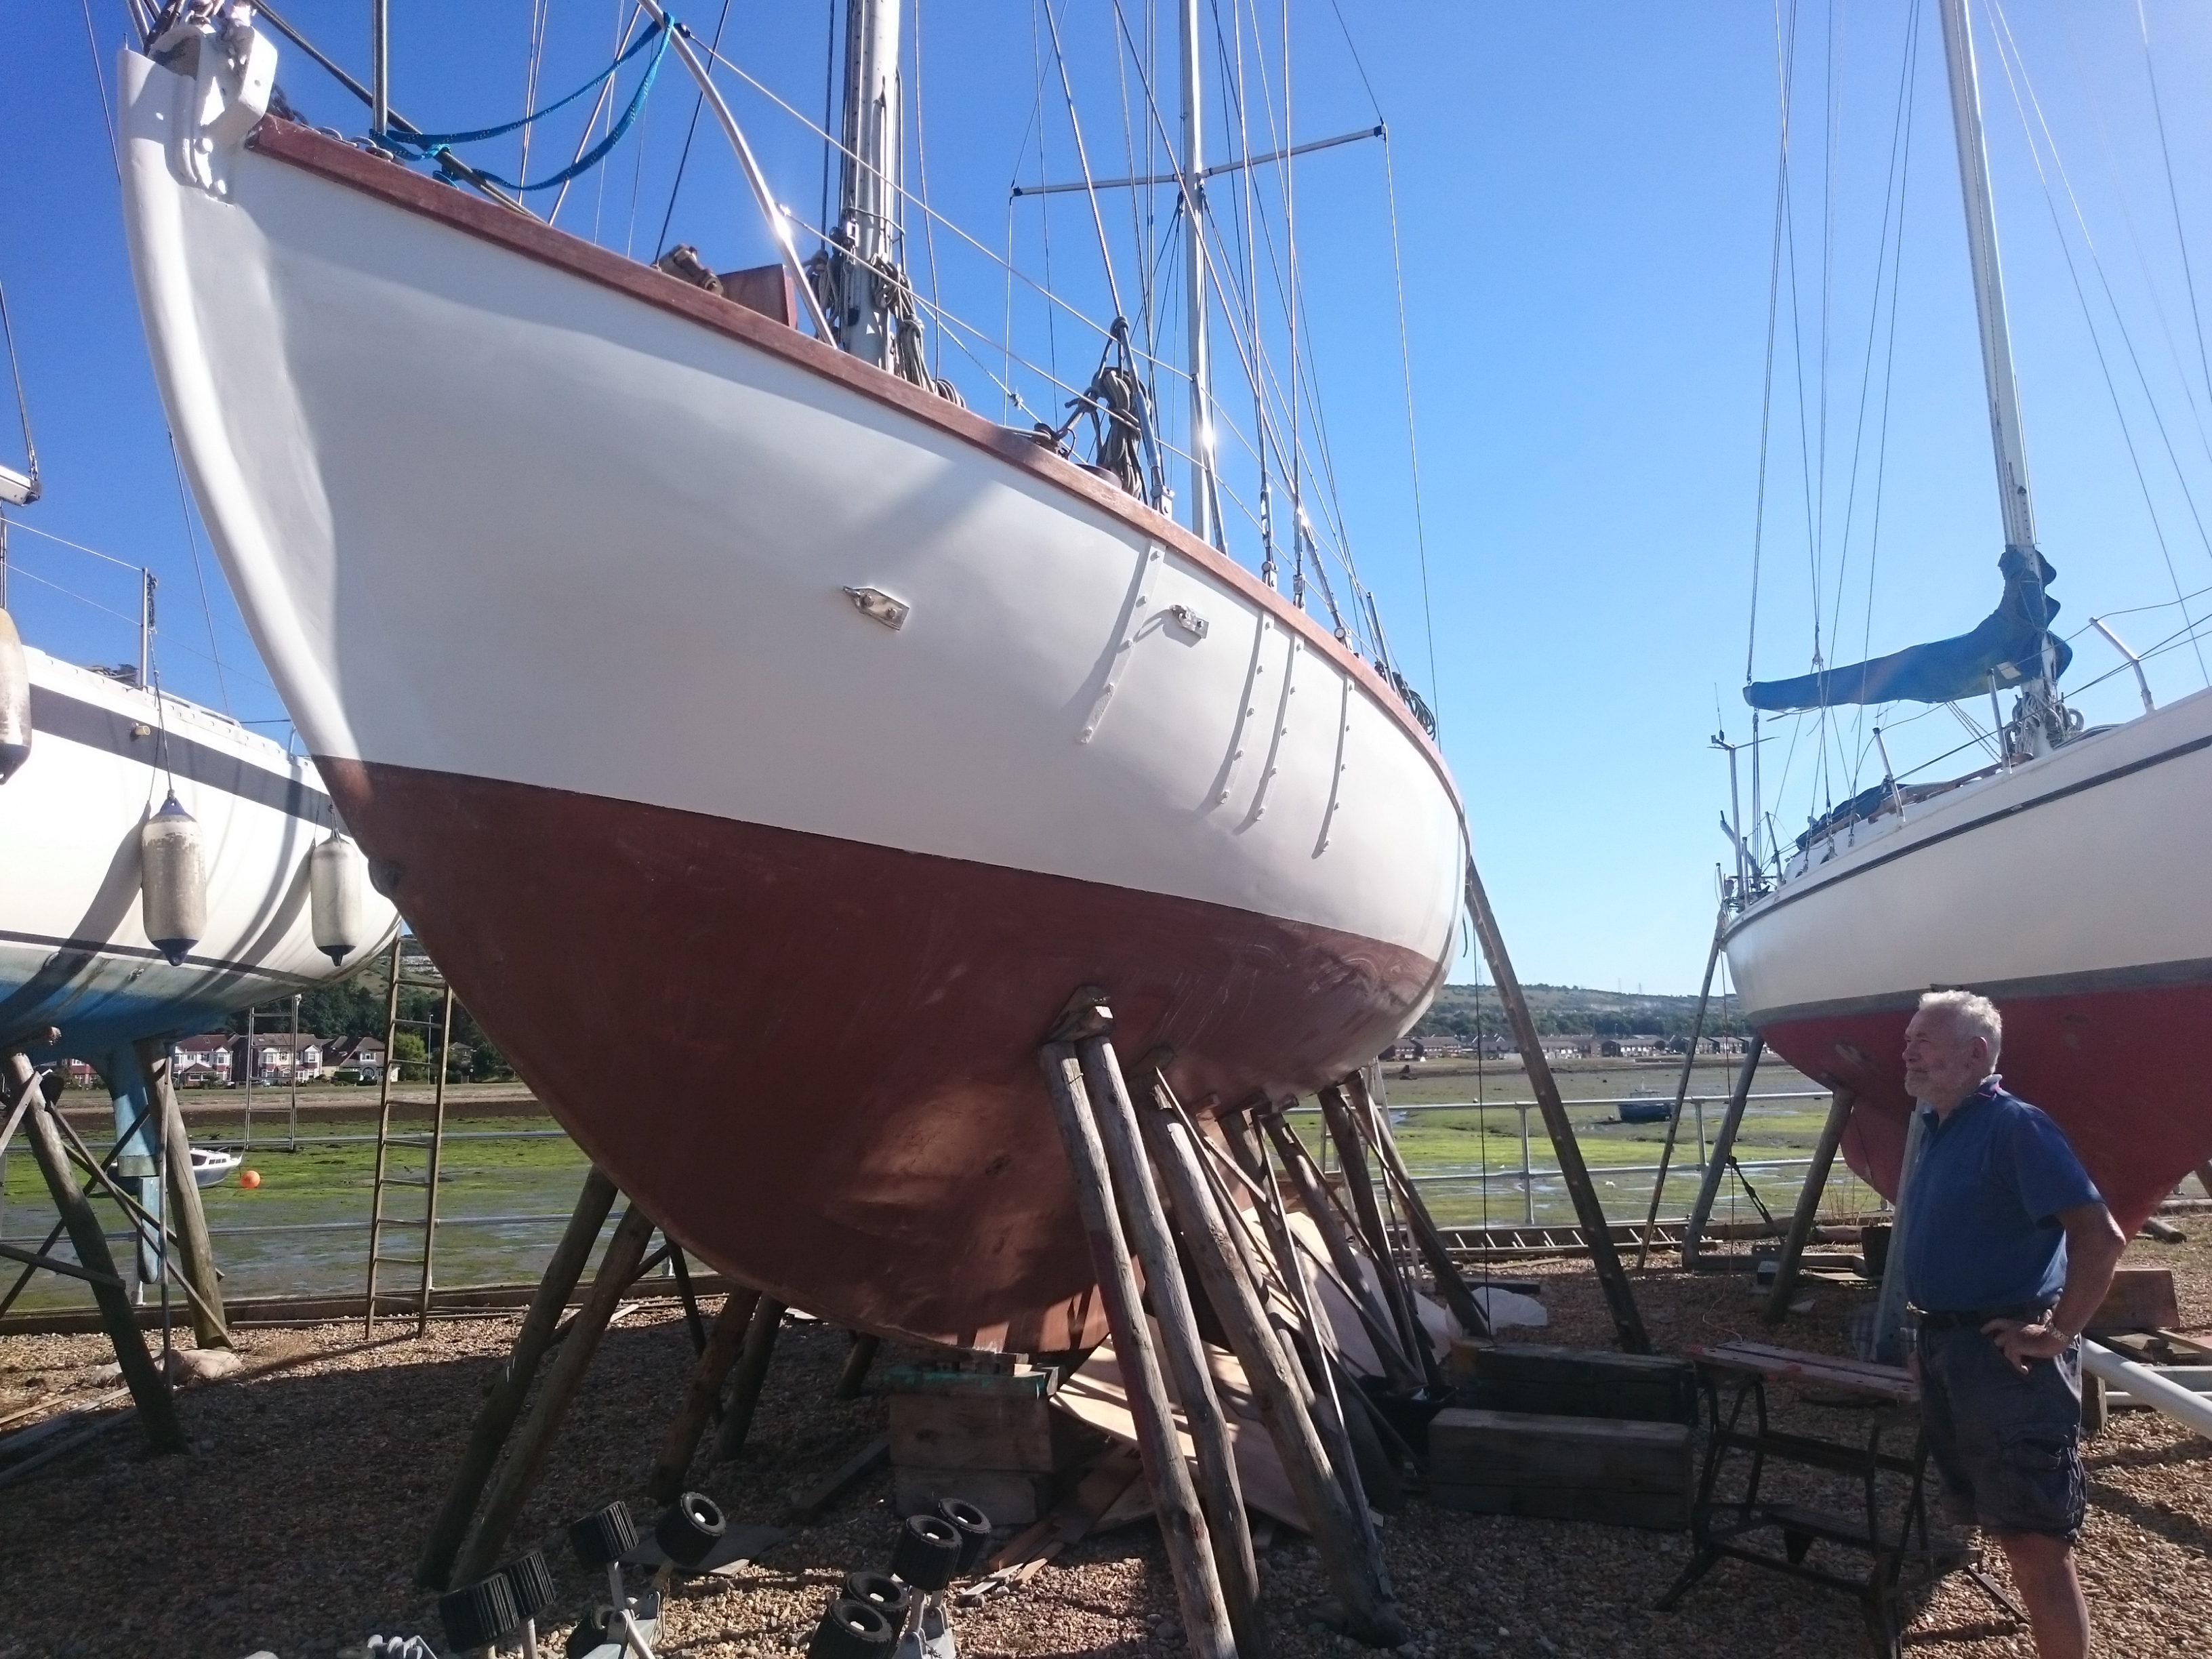 Coppercoat makes debut as Official Antifoul Supplier